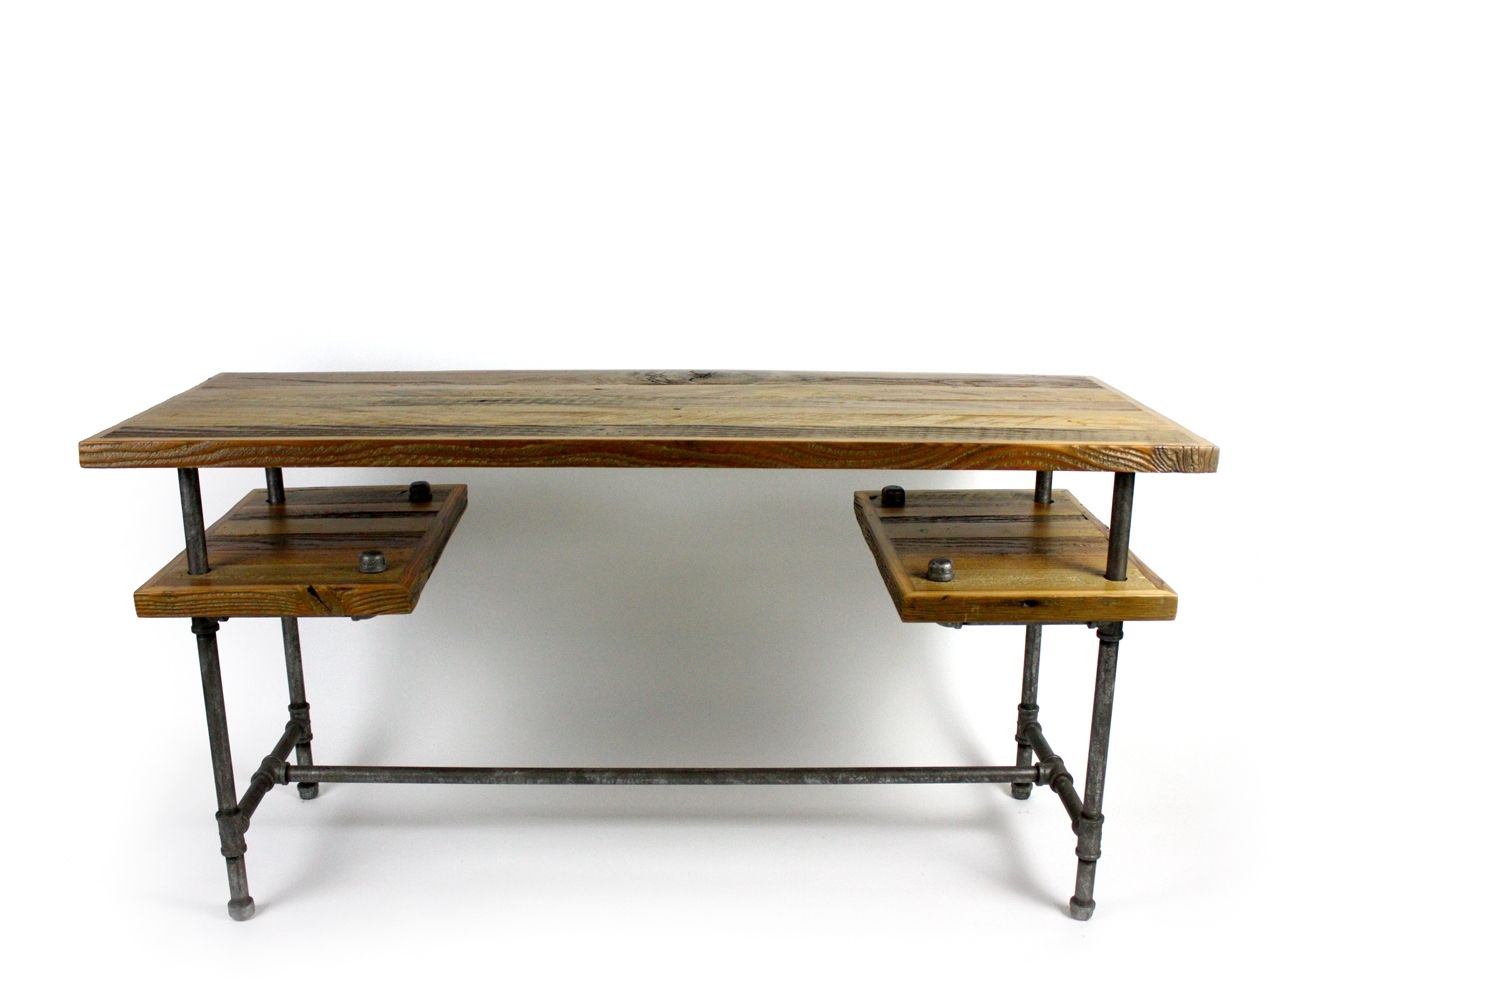 Custom 'Galvy' Industrial Desk // Reclaimed Wood Table by MFEO ...